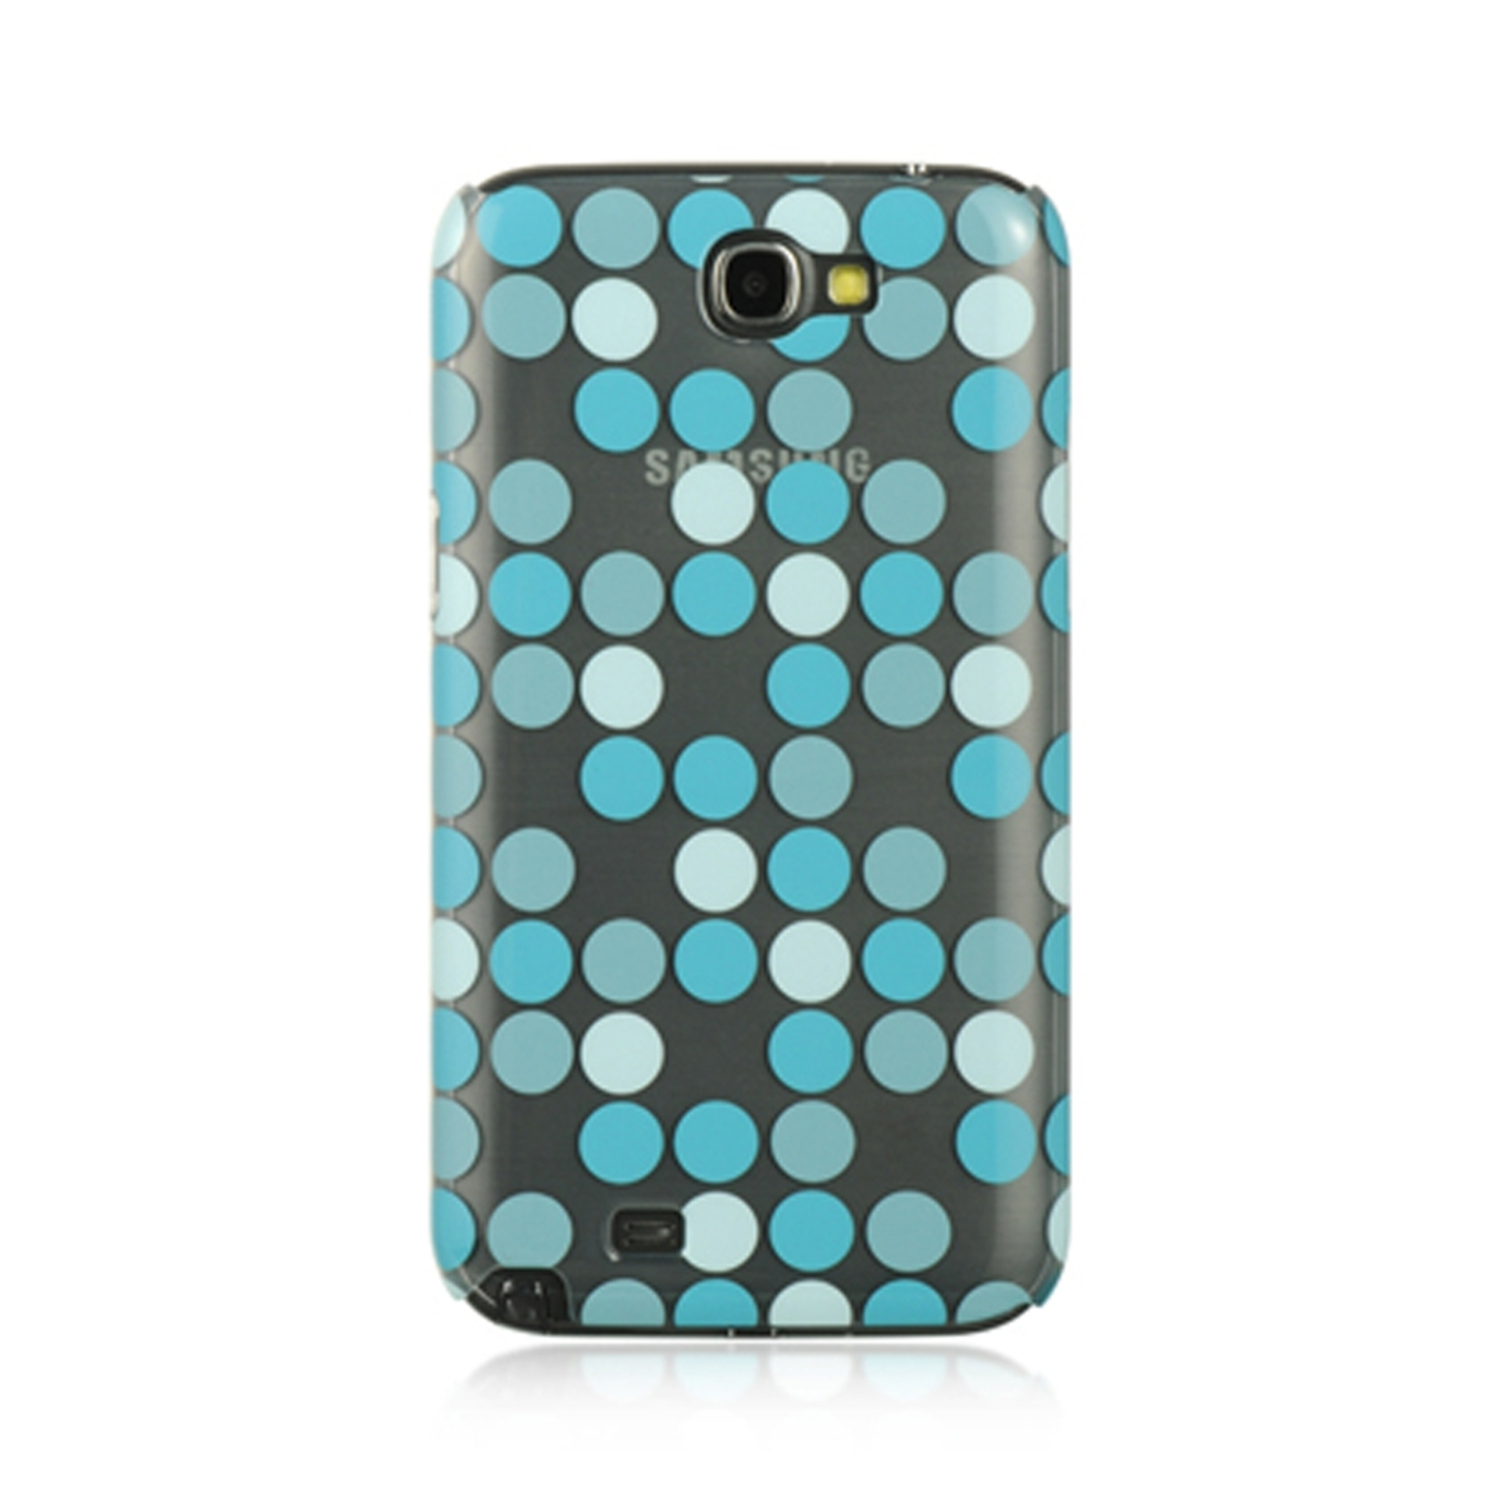 Samsung Galaxy Note 2 Case, by Insten Dots Rubberized Hard Snap-in Case Cover For Samsung Galaxy Note II